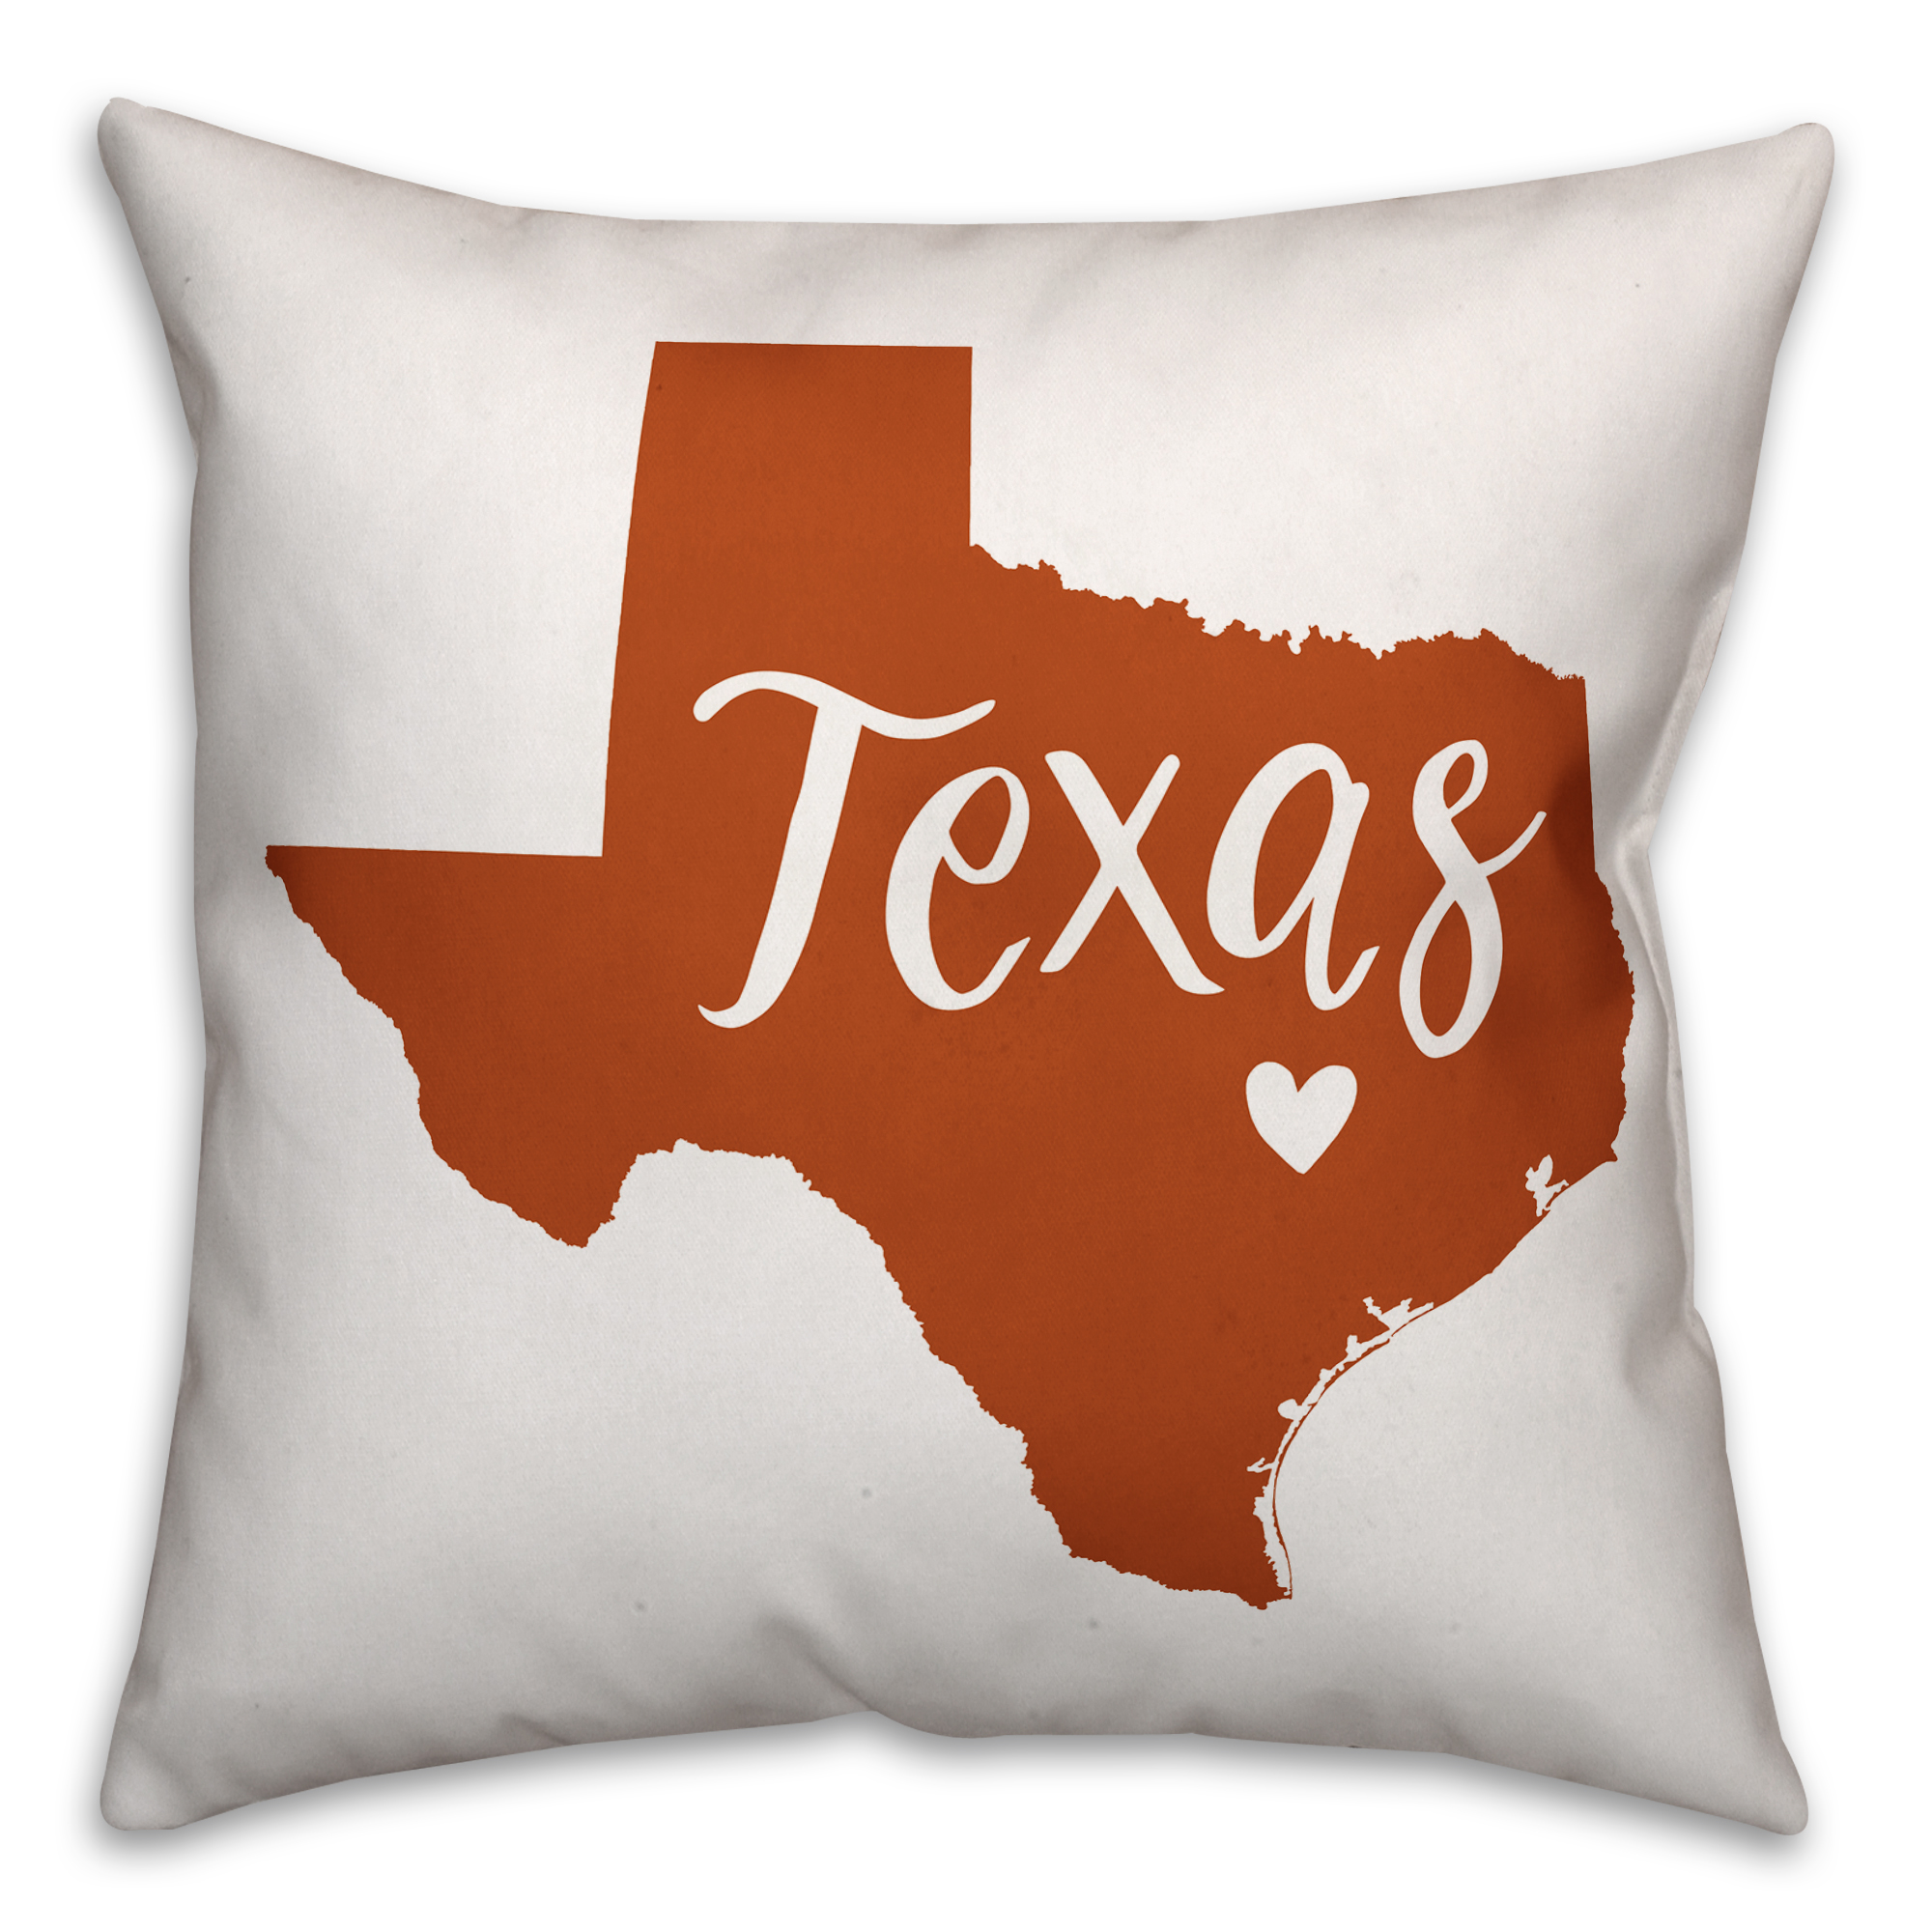 Orange and White Texas Pride 16x16 Spun Poly Pillow